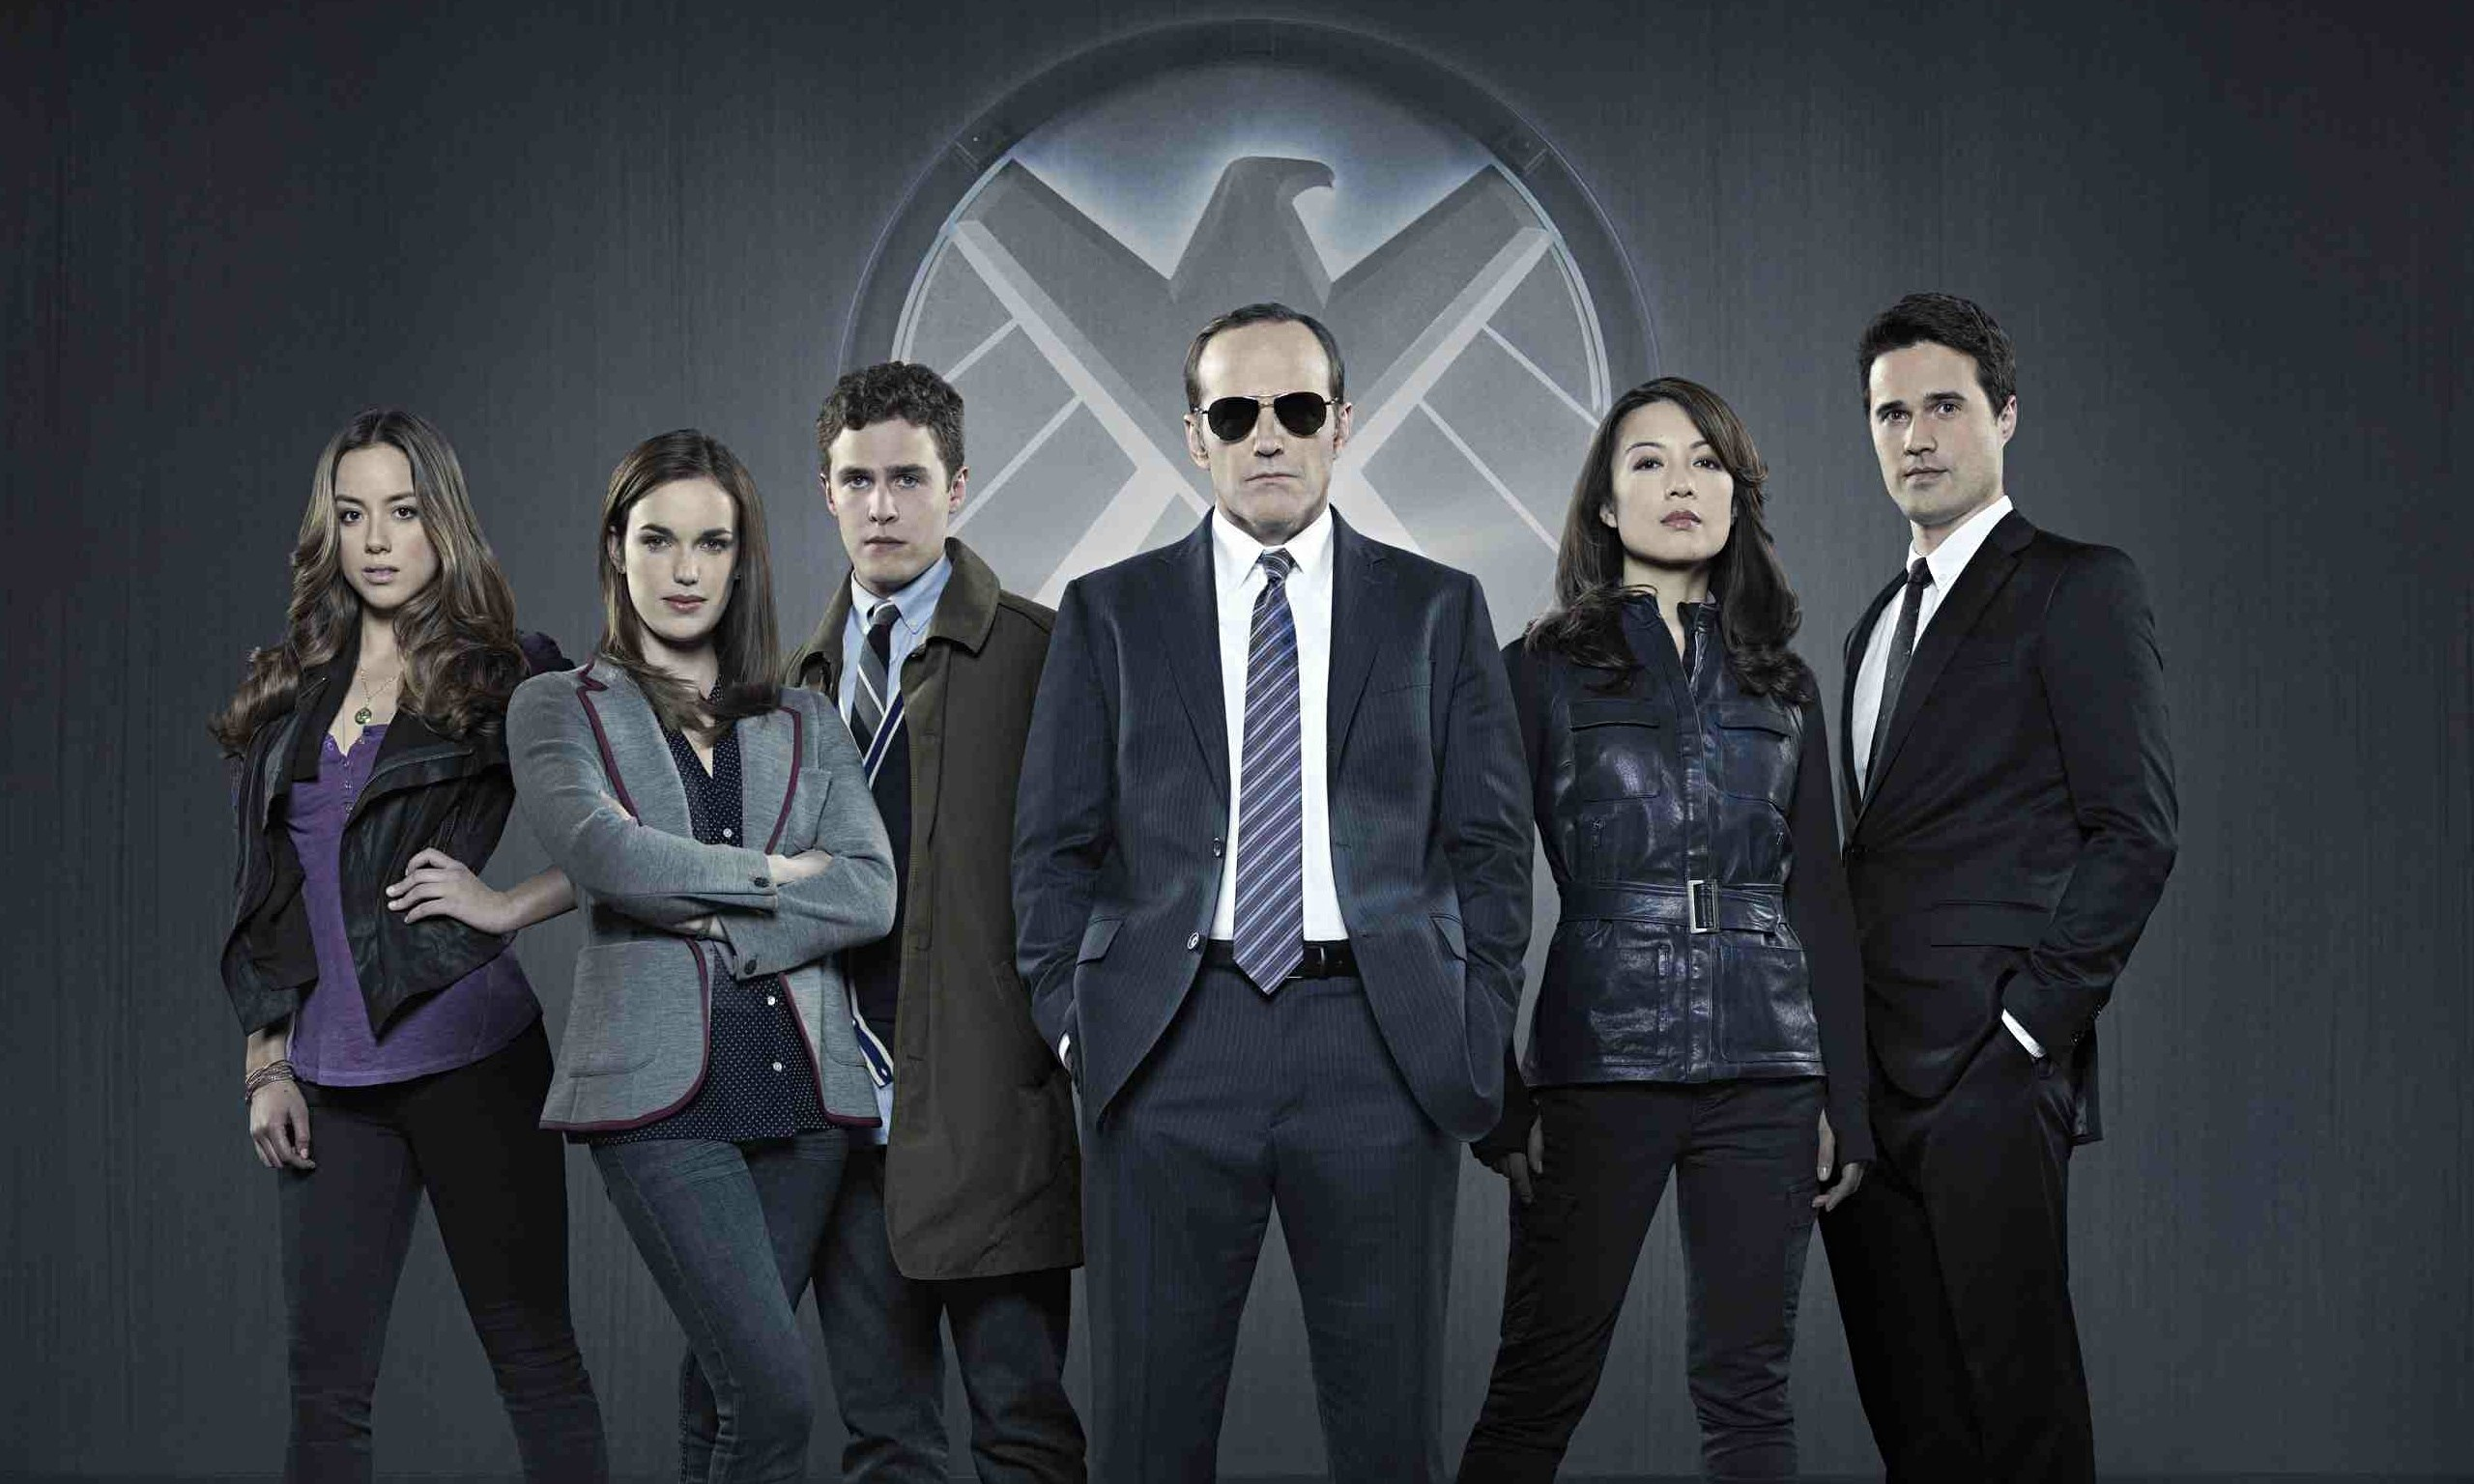 Agents of S.H.I.E.L.D., Marvel, Agents of S.H.I.E.L.D. season 6